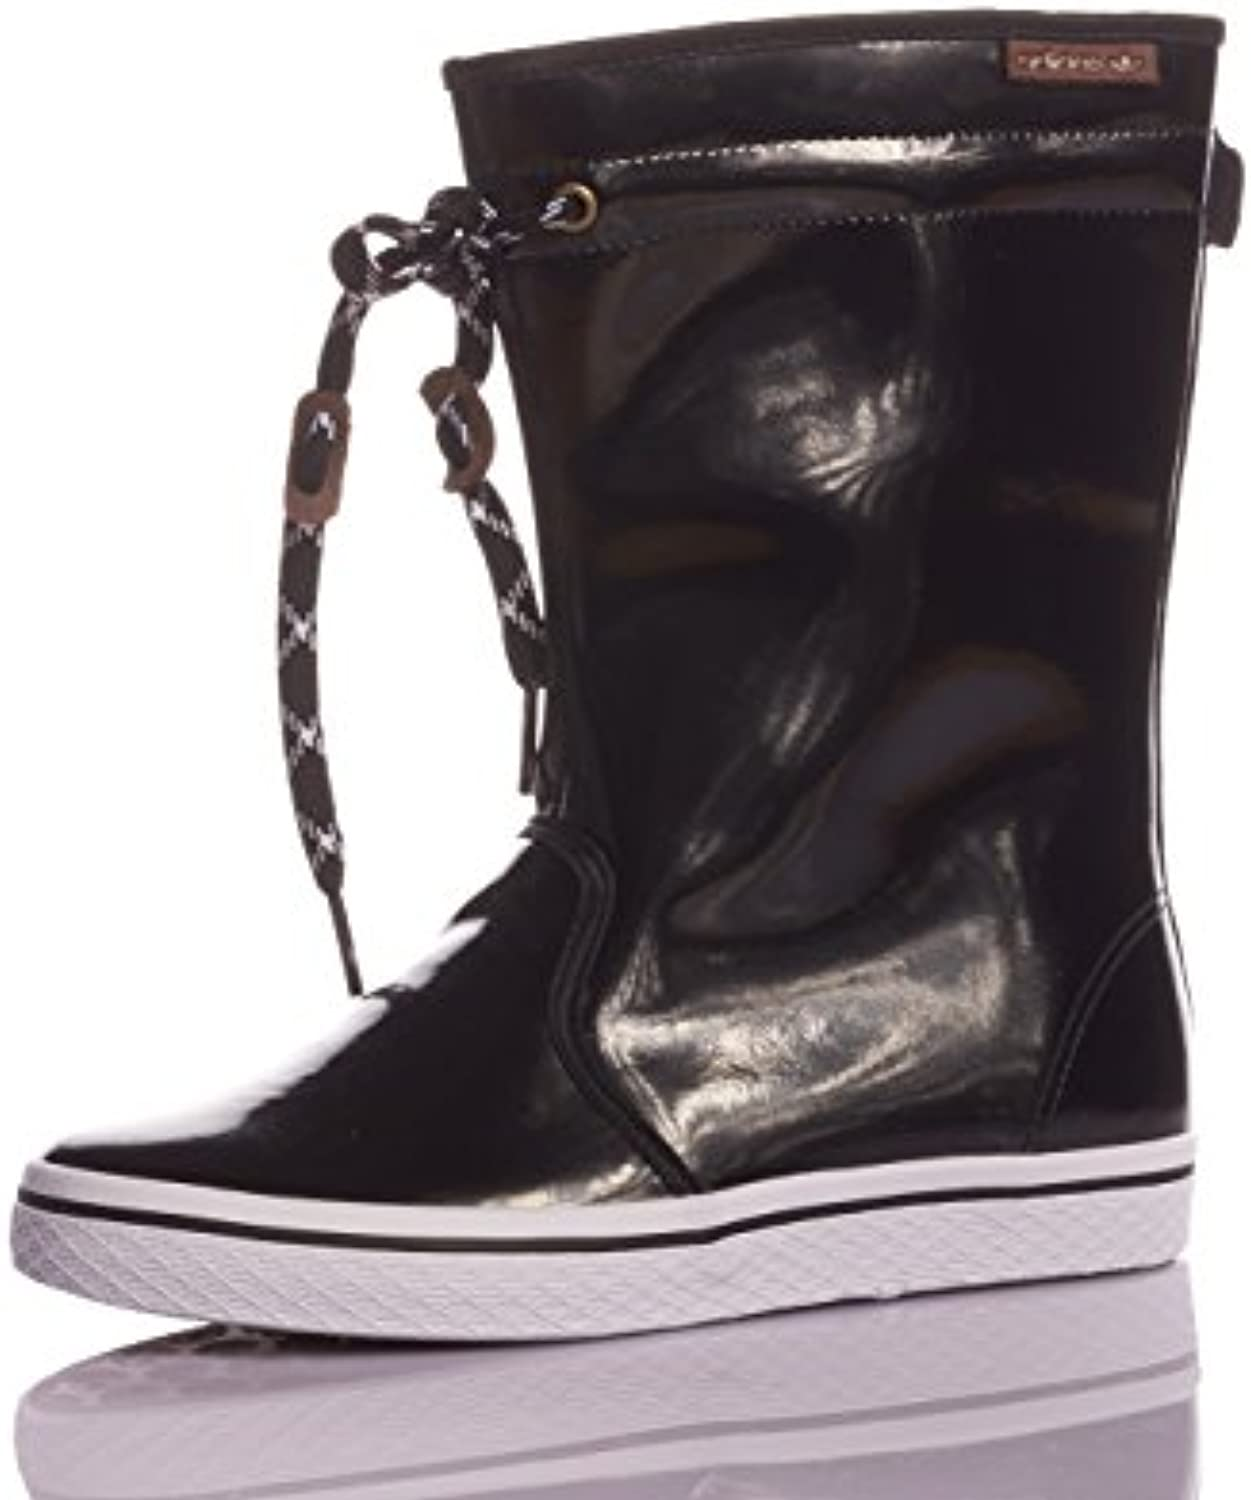 Adidas - HONEY BOOT W - Coleur: Negro - Taille: 38.0